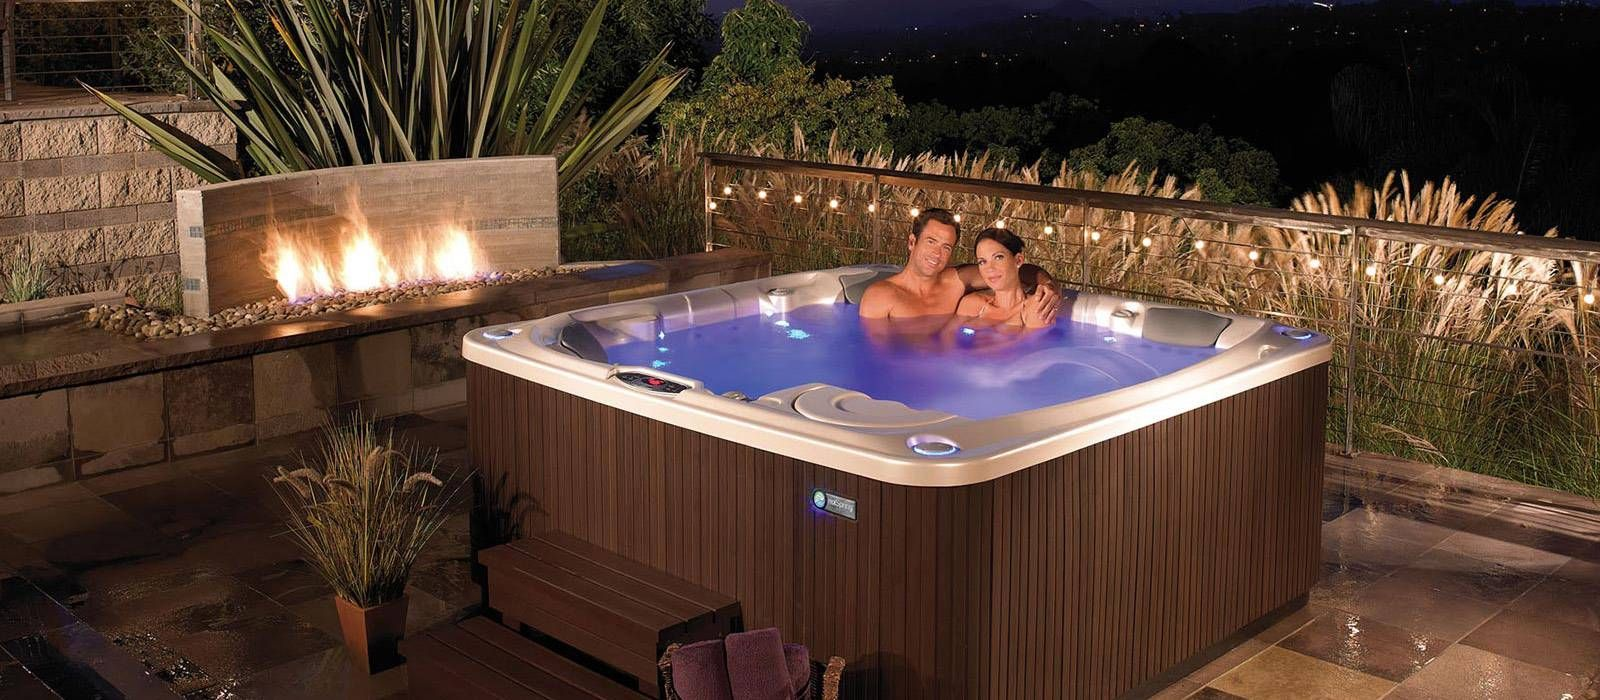 hot tubs landscape ideas backyard hot tub designs hot spring spas - Hot Tub Design Ideas